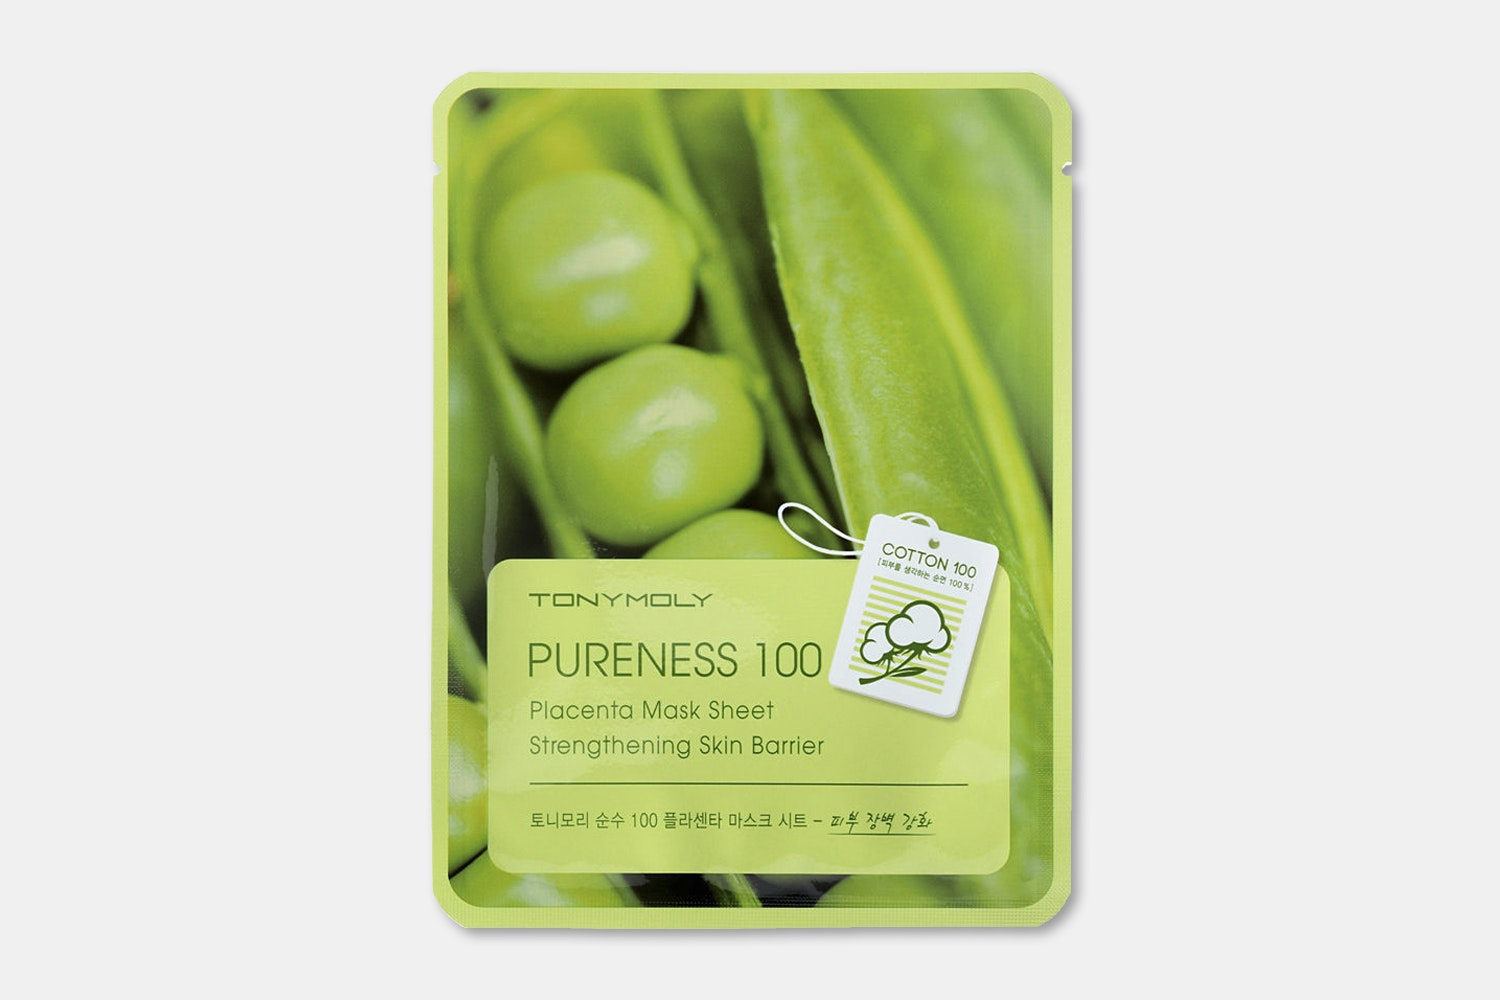 Pureness 100 plant placenta mask